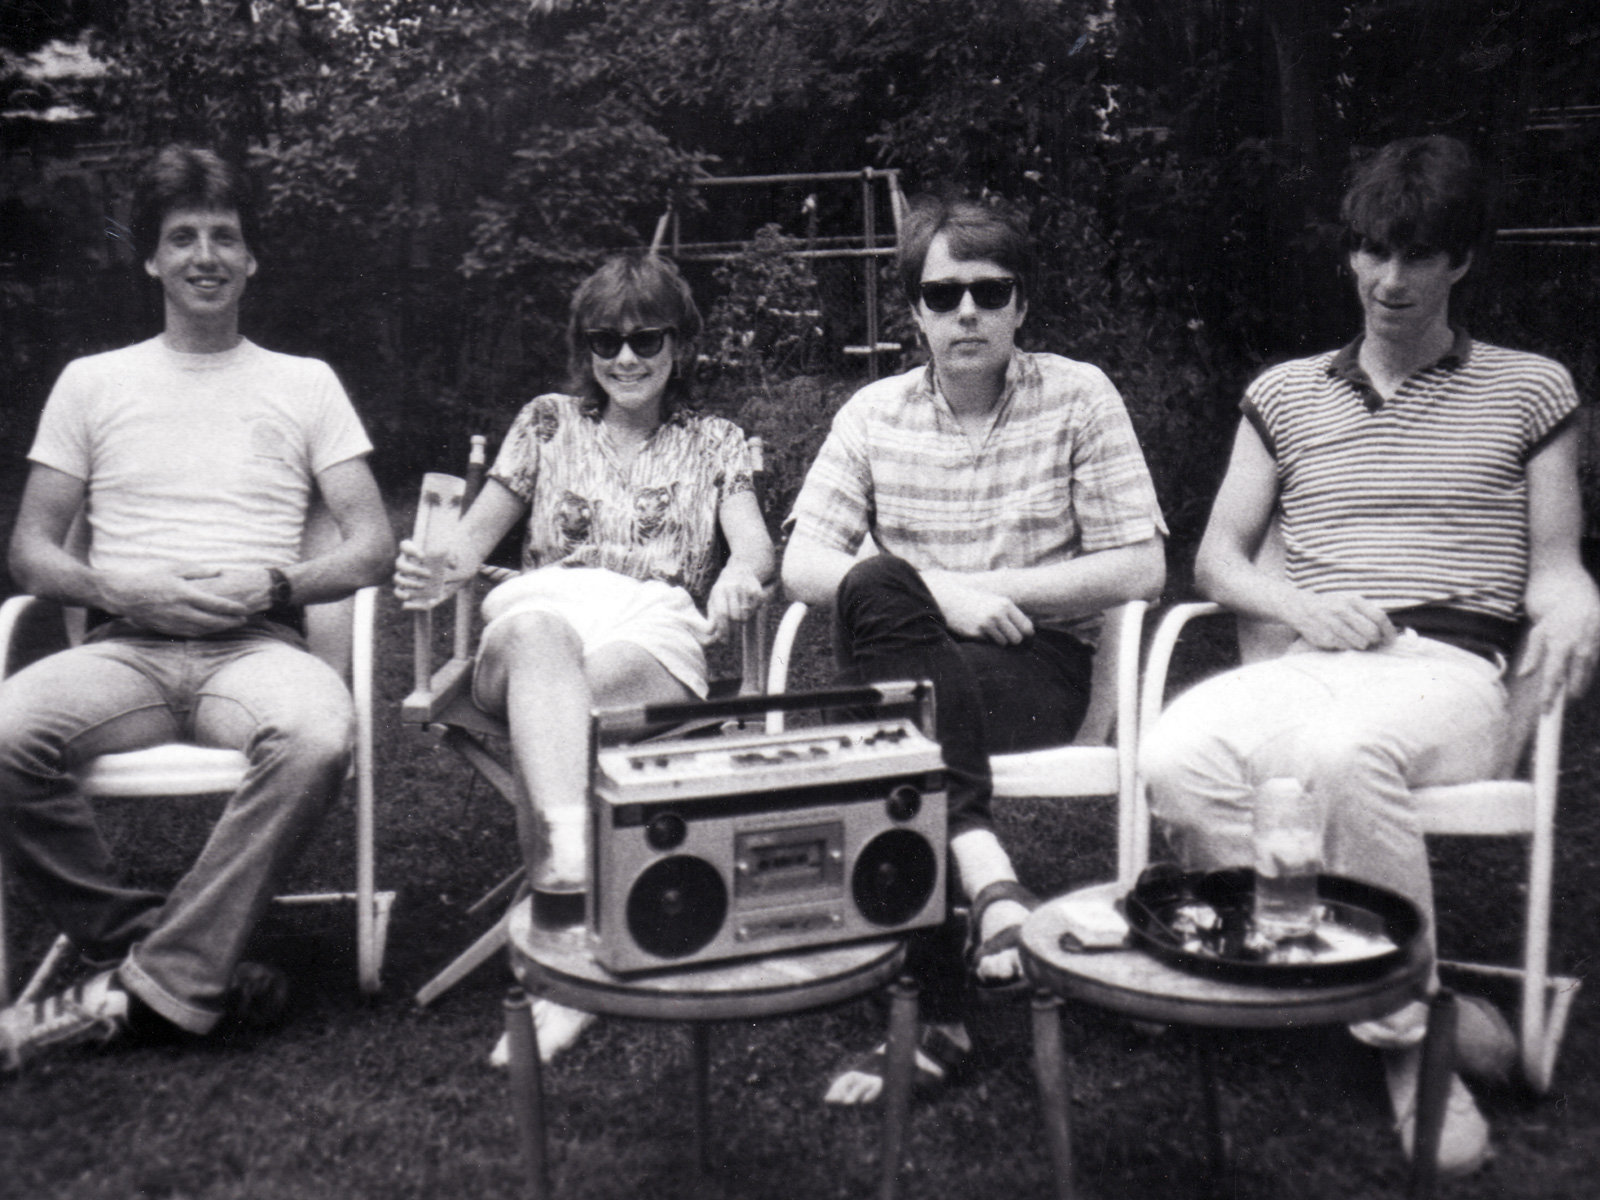 Promo shot of Personal Effects 1983. Bernie Heveron, Peggi Fournier, Bob Martin and Paul Dodd.